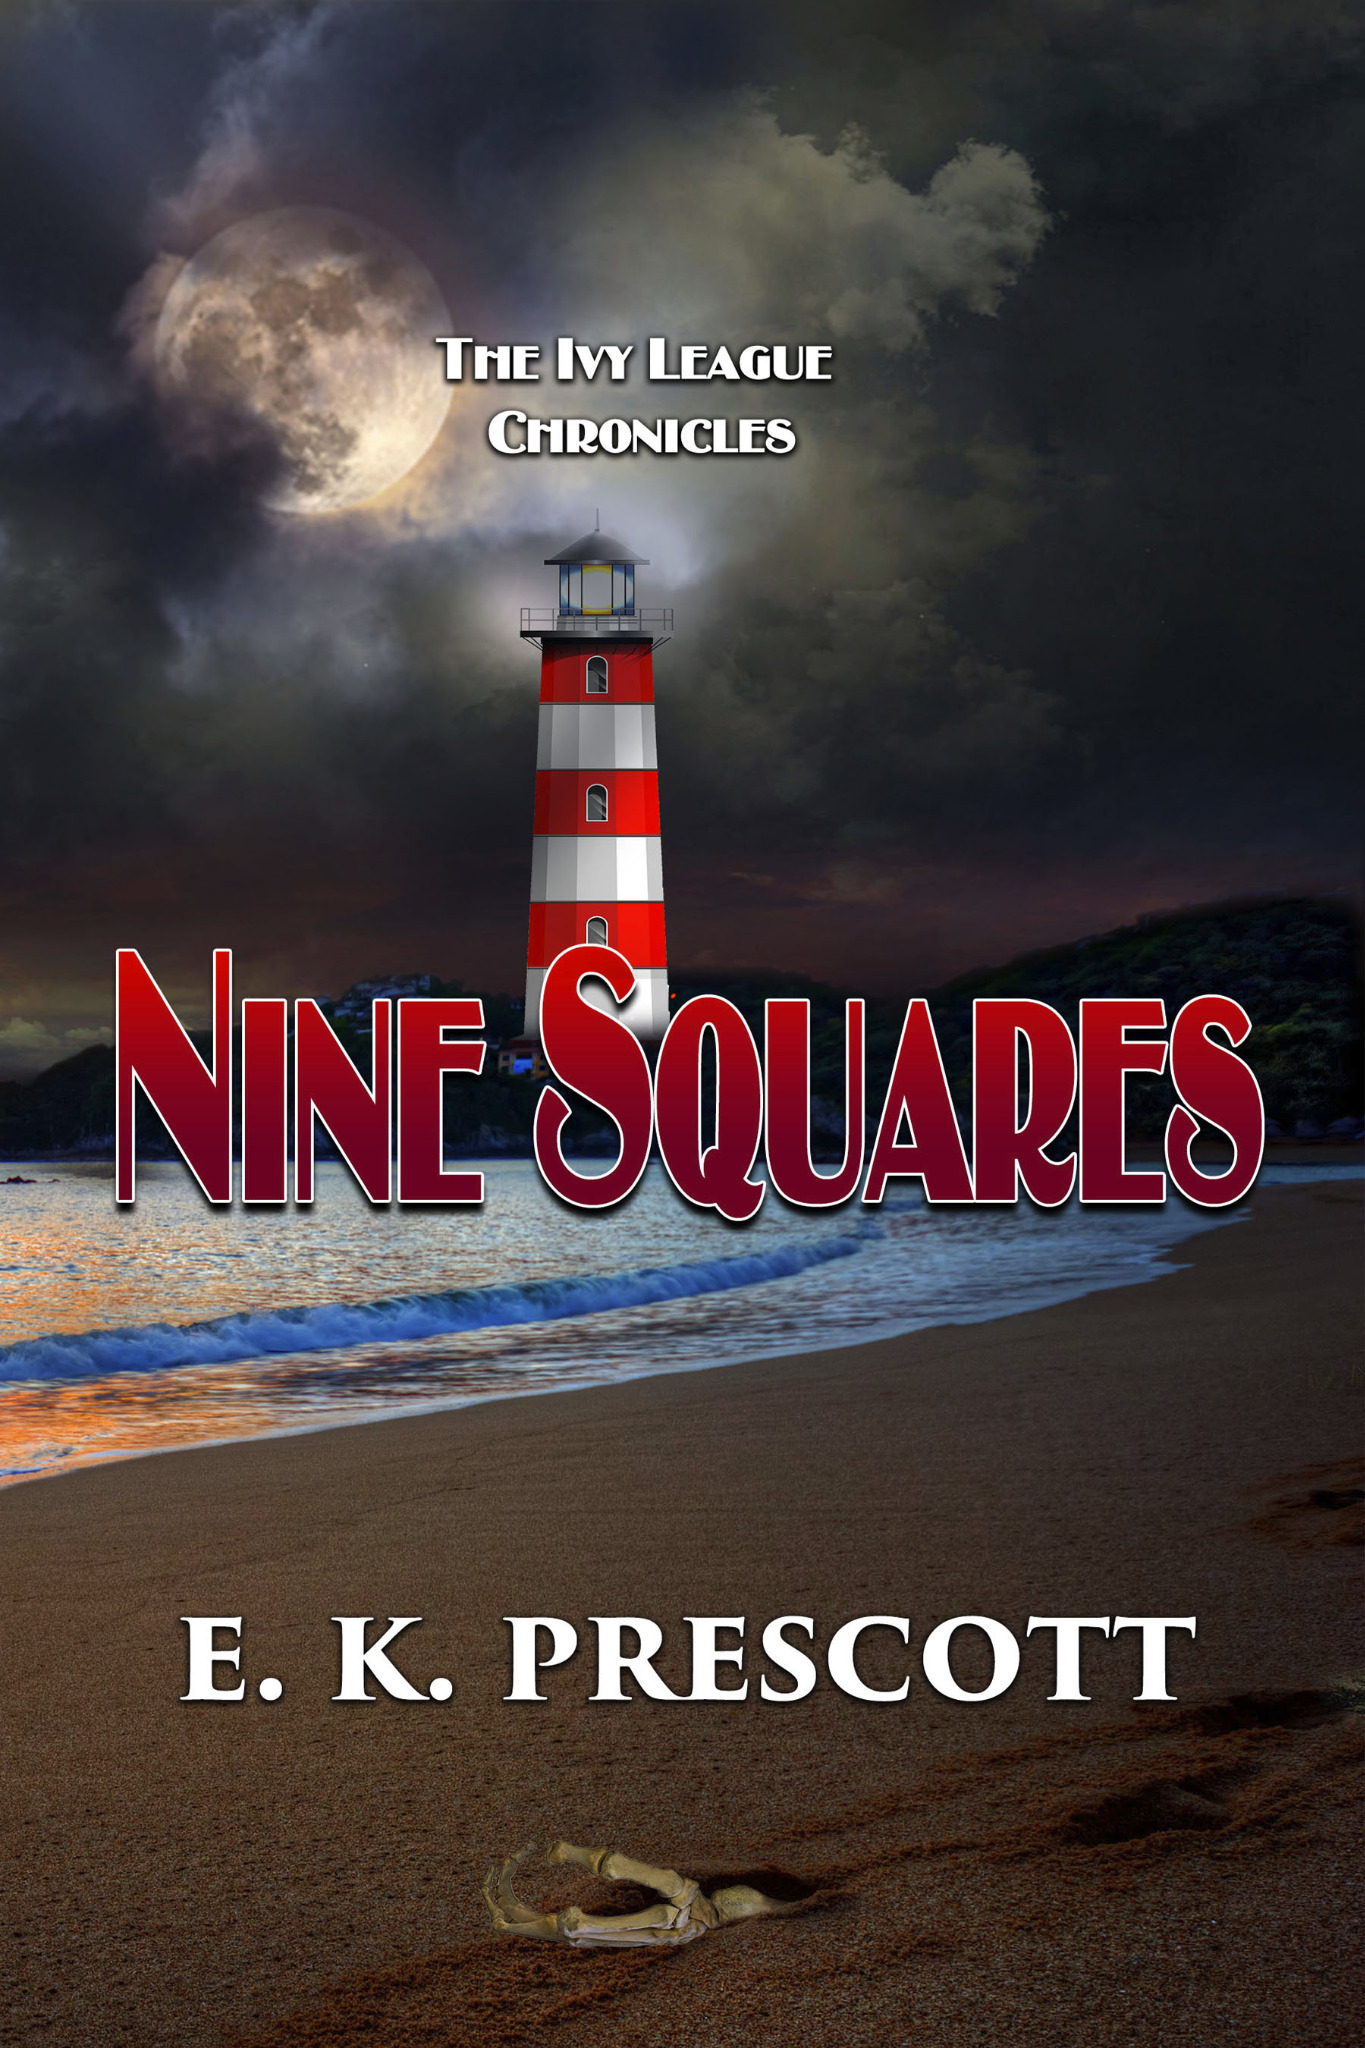 Nine Squares - Ivy League Chronicles Book 1